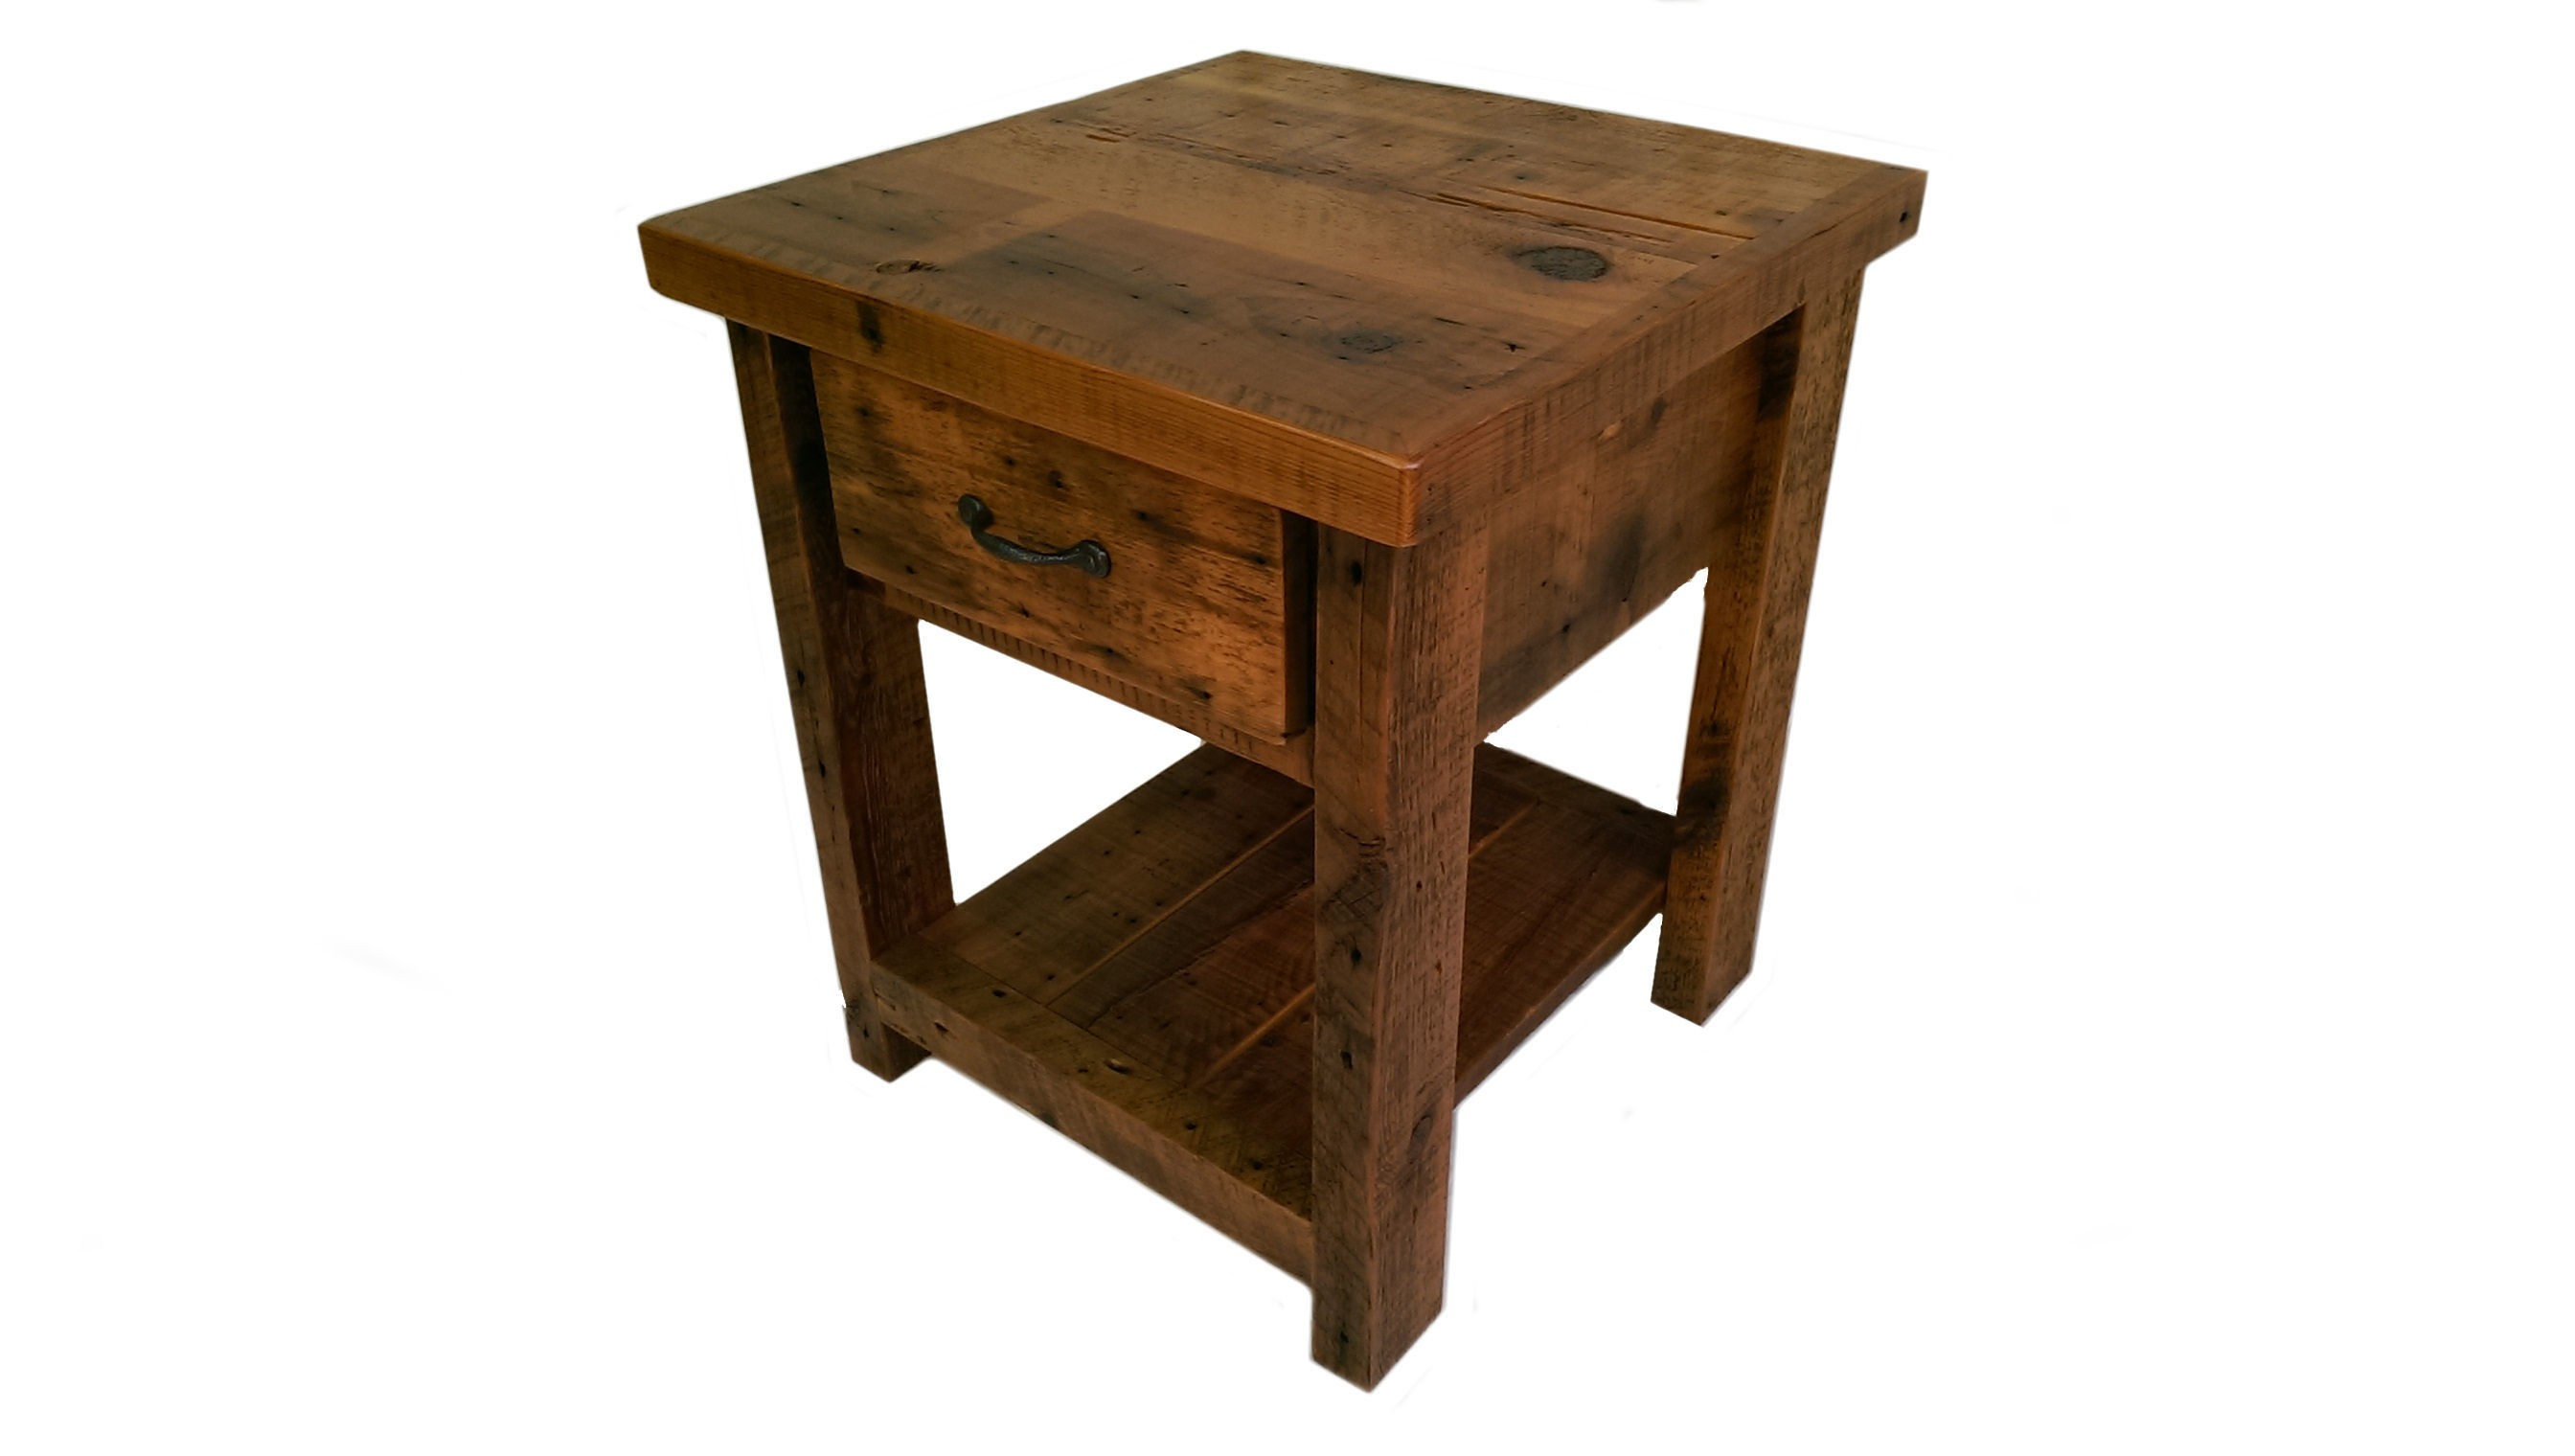 Reclaimed barn wood end table with one drawer and shelf